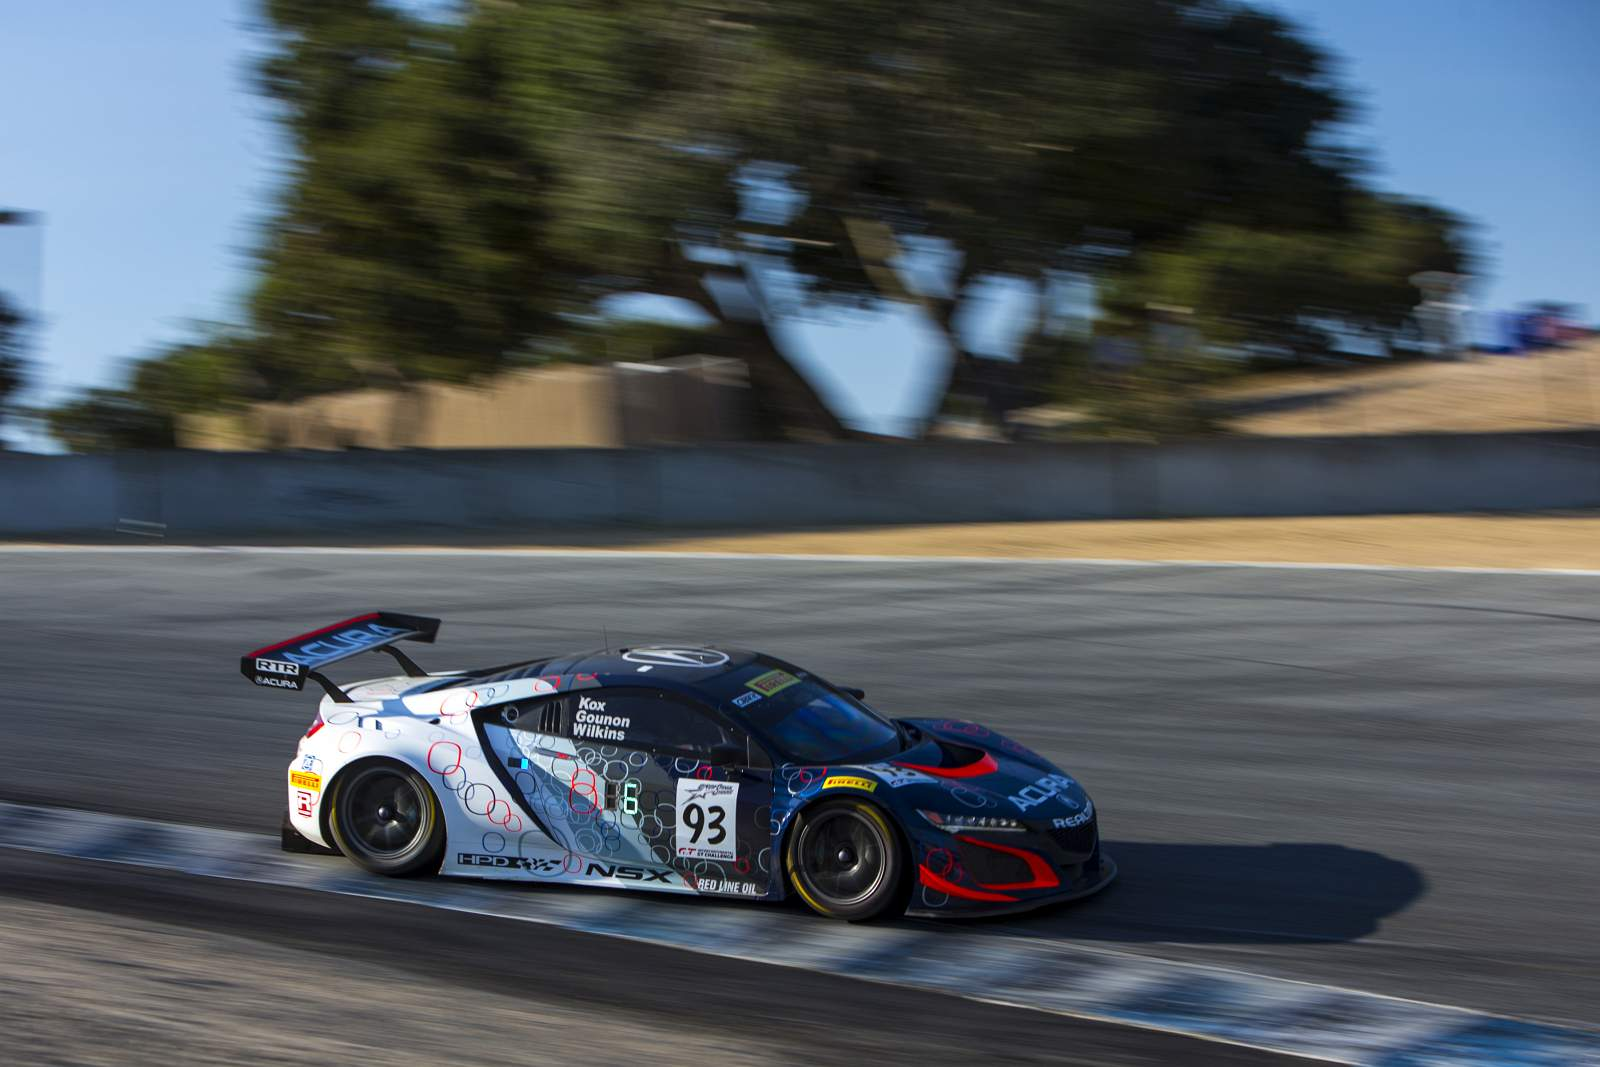 peter-kox-realtime-racing-pirelli-world-challenge-california-045